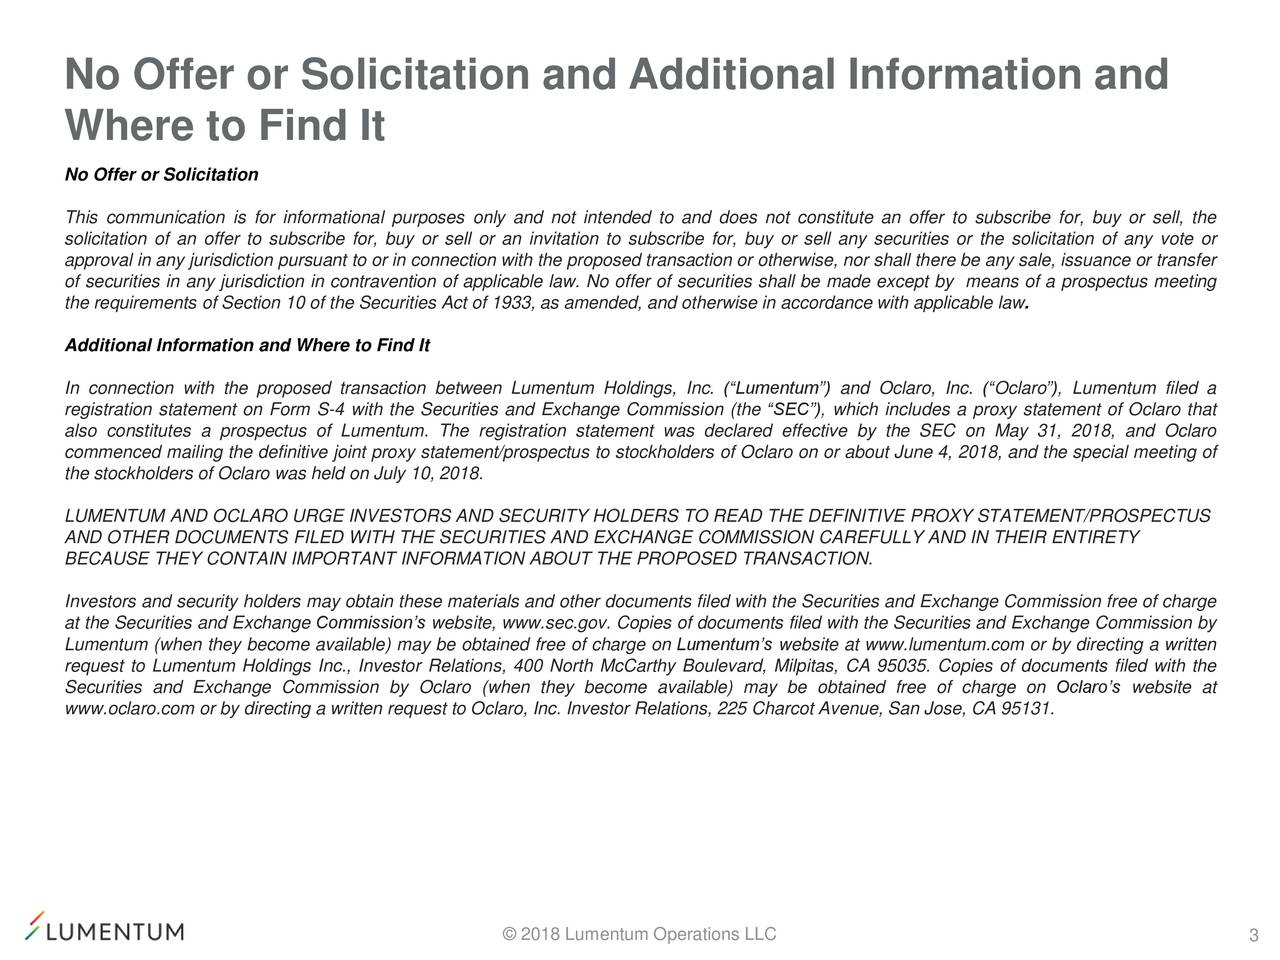 """Where to Find It No Offer or Solicitation This communication is for informational purposes only and not intended to and does not constitute an offer to subscribe for, buy or sell, the solicitation of an offer to subscribe for, buy or sell or an invitation to subscribe for, buy or sell any securities or the solicitation of any vote or approval in any jurisdiction pursuant to or in connection with the proposed transaction or otherwise, nor shall there be any sale, issuance or transfer of securities in any jurisdiction in contravention of applicable law. No offer of securities shall be made except by means of a prospectus meeting the requirements of Section 10 of the Securities Act of 1933, as amended, and otherwise in accordance with applicable law. Additional Information and Where to Find It In connection with the proposed transaction between Lumentum Holdings, Inc. (""""Lumentum"""") and Oclaro, Inc. (""""Oclaro""""), Lumentum filed a registration statement on Form S-4 with the Securities and Exchange Commission (the """"SEC""""), which includes a proxy statement of Oclaro that also constitutes a prospectus of Lumentum. The registration statement was declared effective by the SEC on May 31, 2018, and Oclaro commenced mailing the definitive joint proxy statement/prospectus to stockholders of Oclaro on or about June 4, 2018, and the special meeting of the stockholders of Oclaro was held on July 10, 2018. LUMENTUM AND OCLARO URGE INVESTORS AND SECURITY HOLDERS TO READ THE DEFINITIVE PROXY STATEMENT/PROSPECTUS AND OTHER DOCUMENTS FILED WITH THE SECURITIES AND EXCHANGE COMMISSION CAREFULLY AND IN THEIR ENTIRETY BECAUSE THEY CONTAIN IMPORTANT INFORMATION ABOUT THE PROPOSED TRANSACTION. Investors and security holders may obtain these materials and other documents filed with the Securities and Exchange Commission free of charge at the Securities and Exchange Commission's website, www.sec.gov. Copies of documents filed with the Securities and Exchange Commission by Lumentum (when they become """